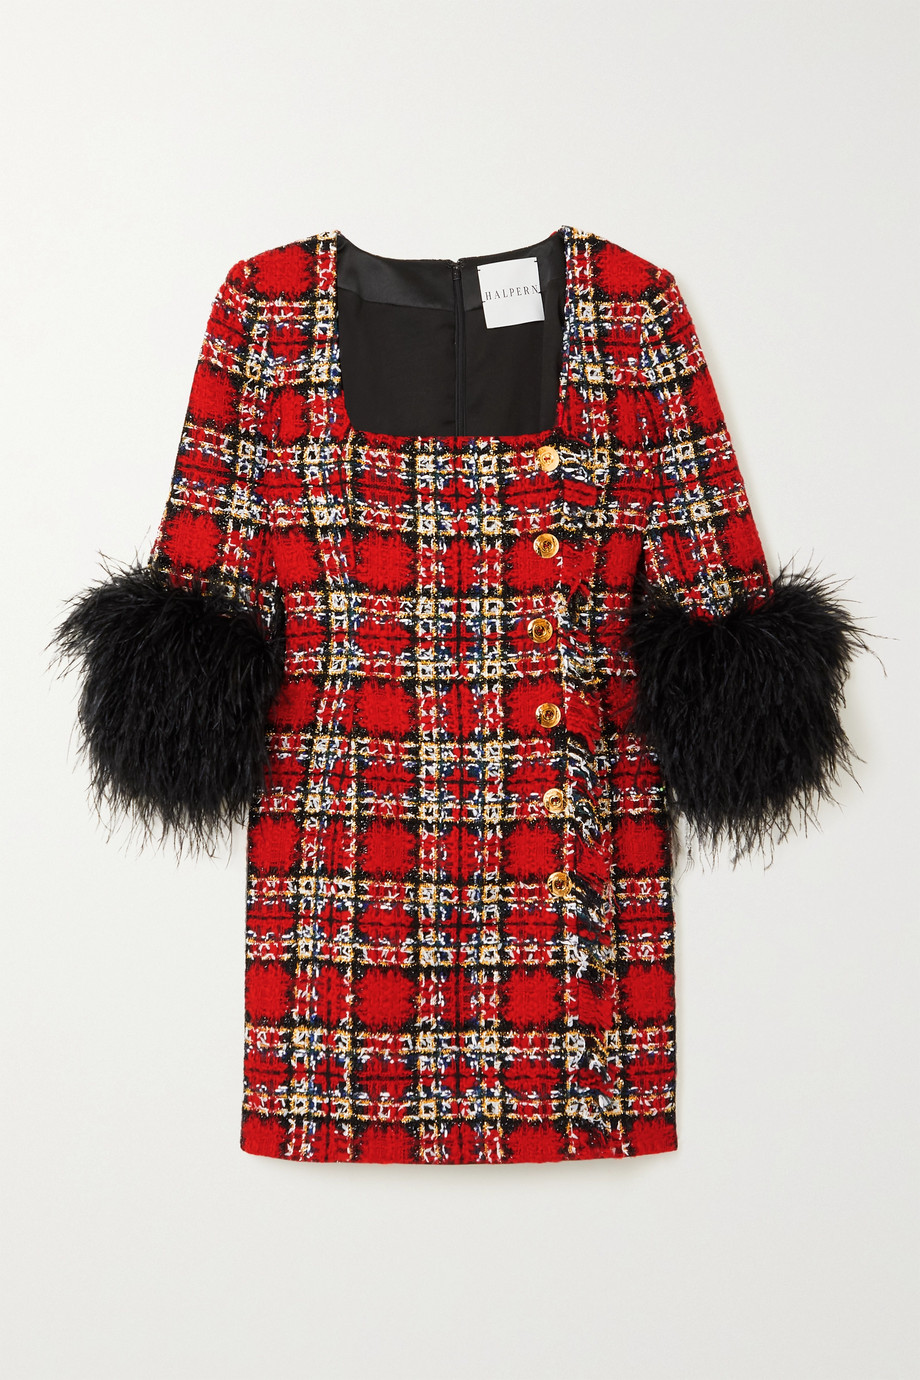 HALPERN Feather-trimmed embellished checked tweed mini dress